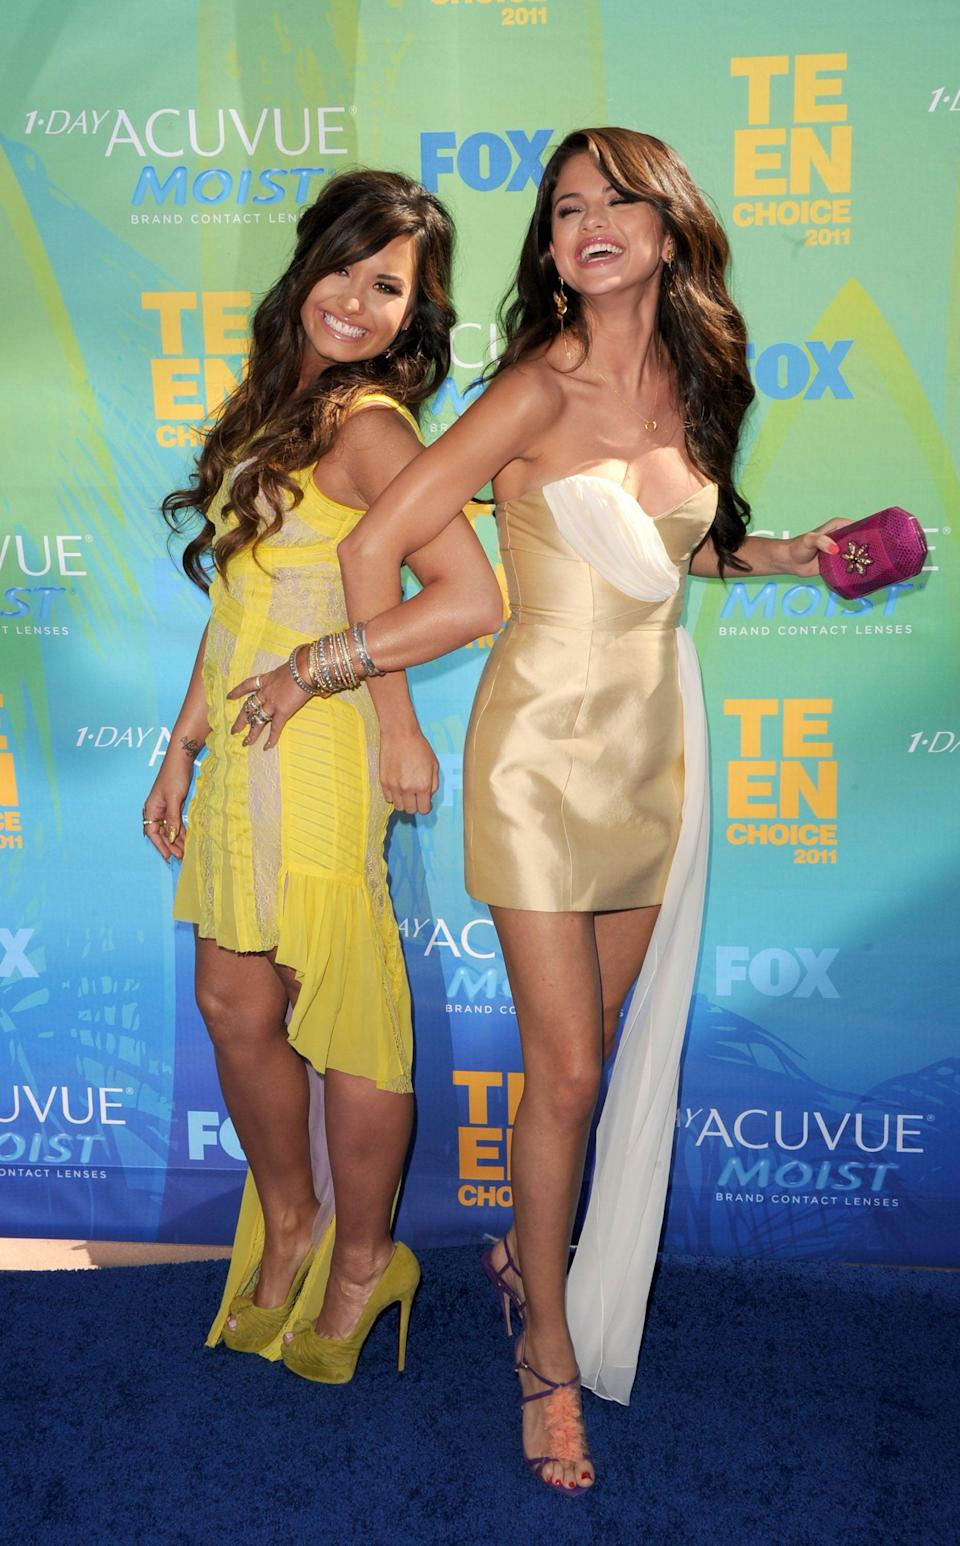 <p>Selena buddied up with Demi Lovato at the Teen Choice Awards in LA.</p>